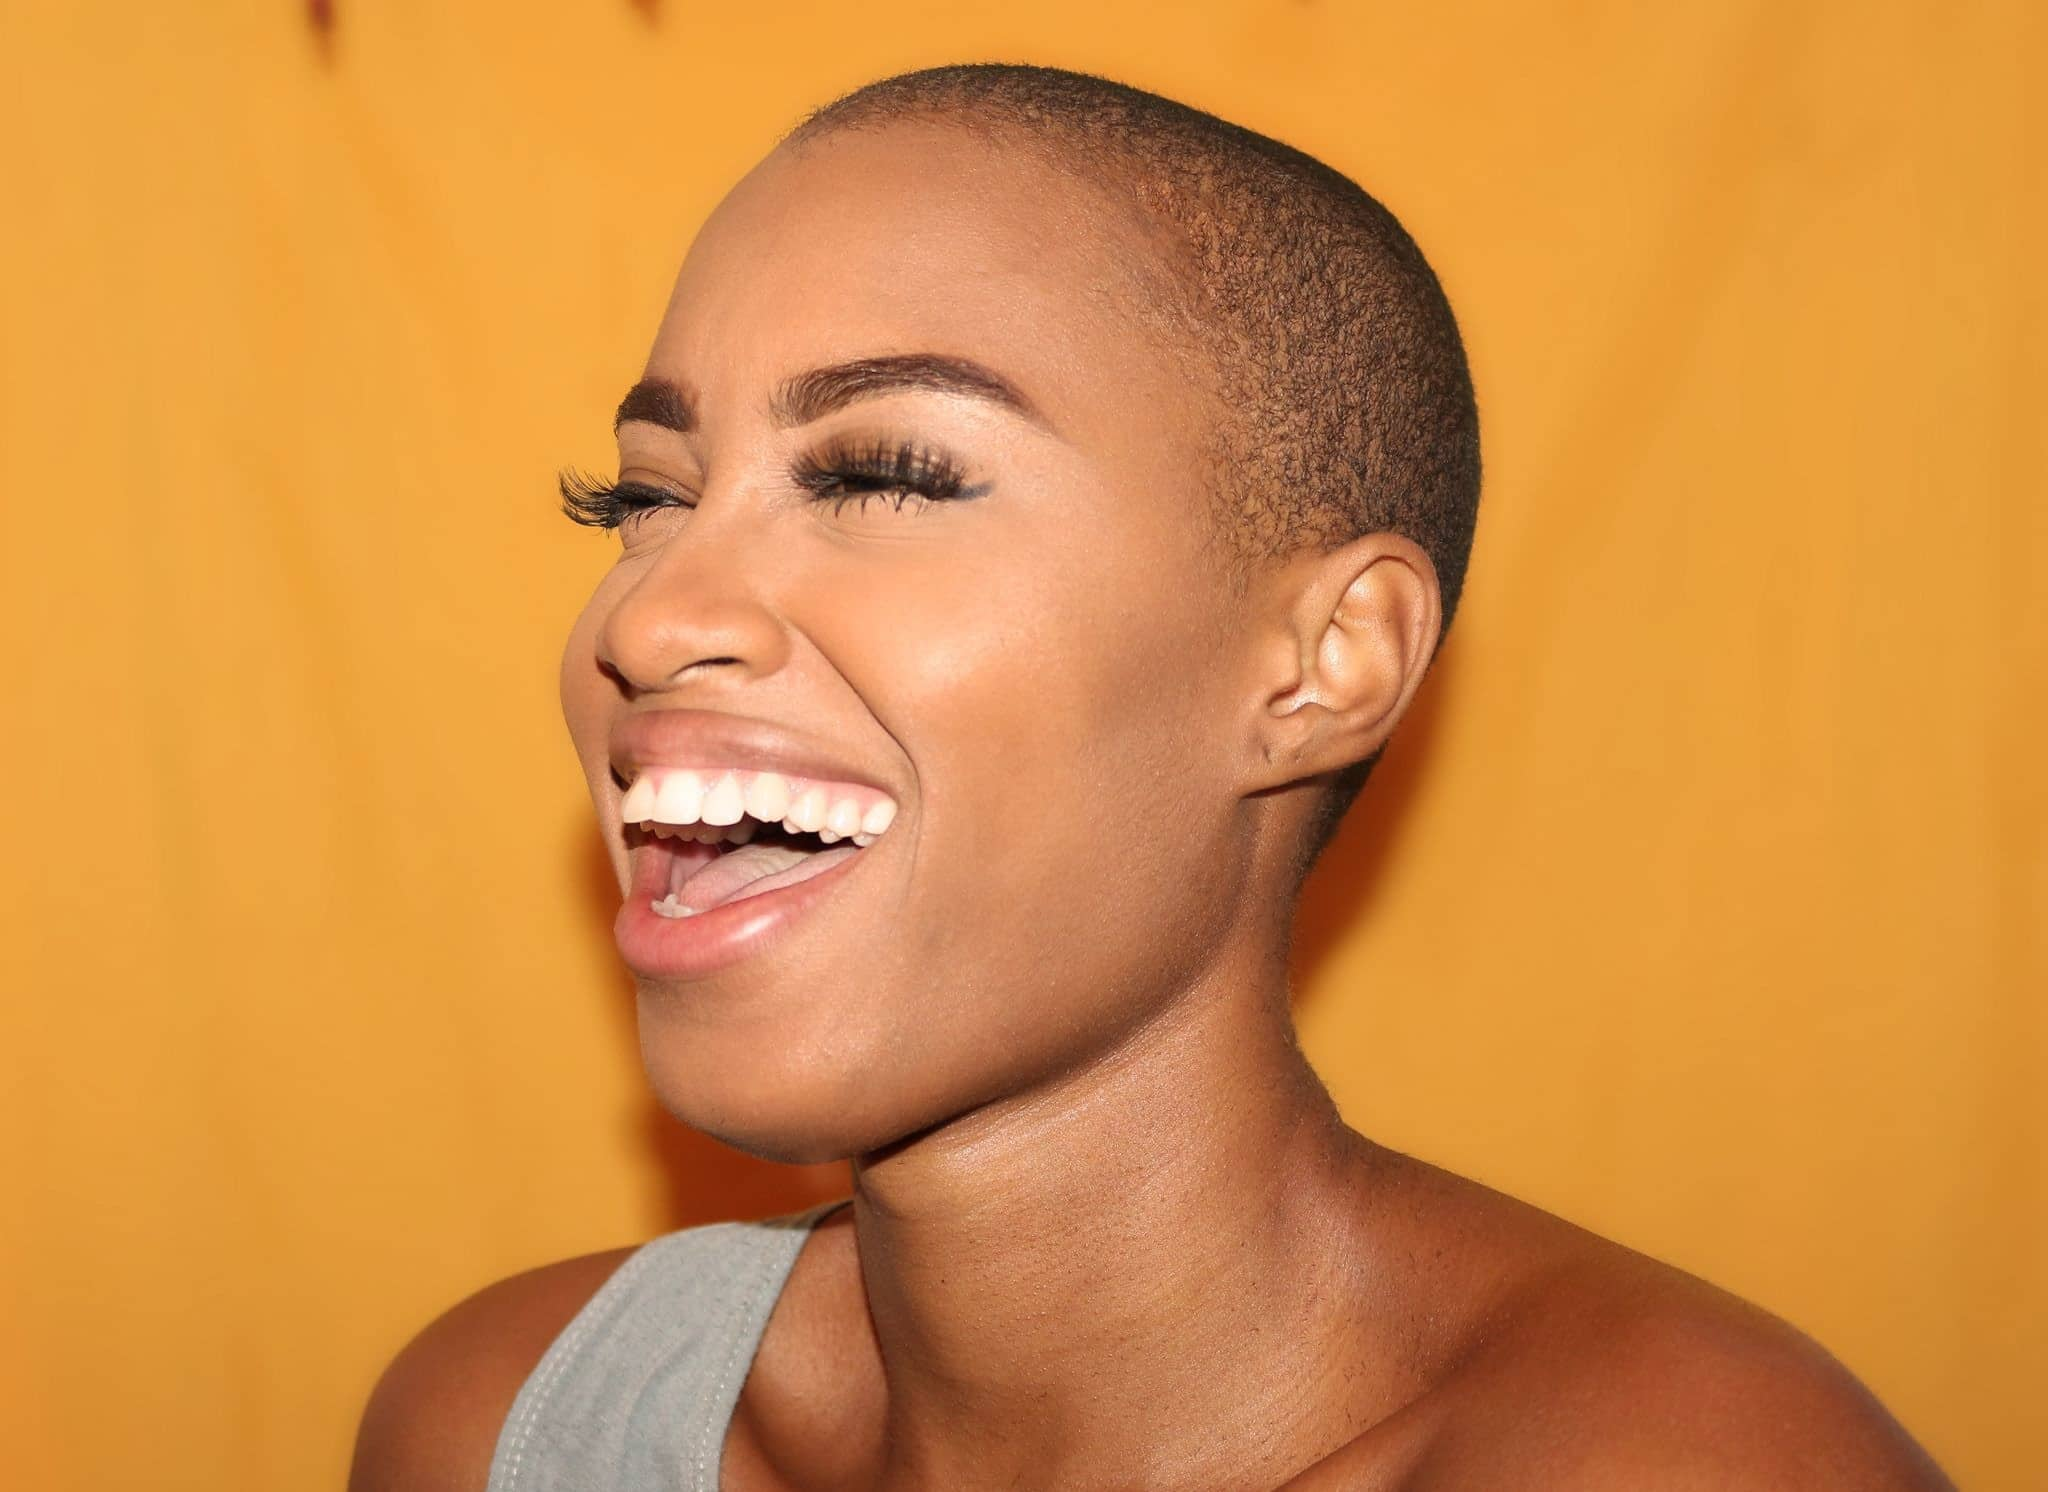 black woman smiling and laughing